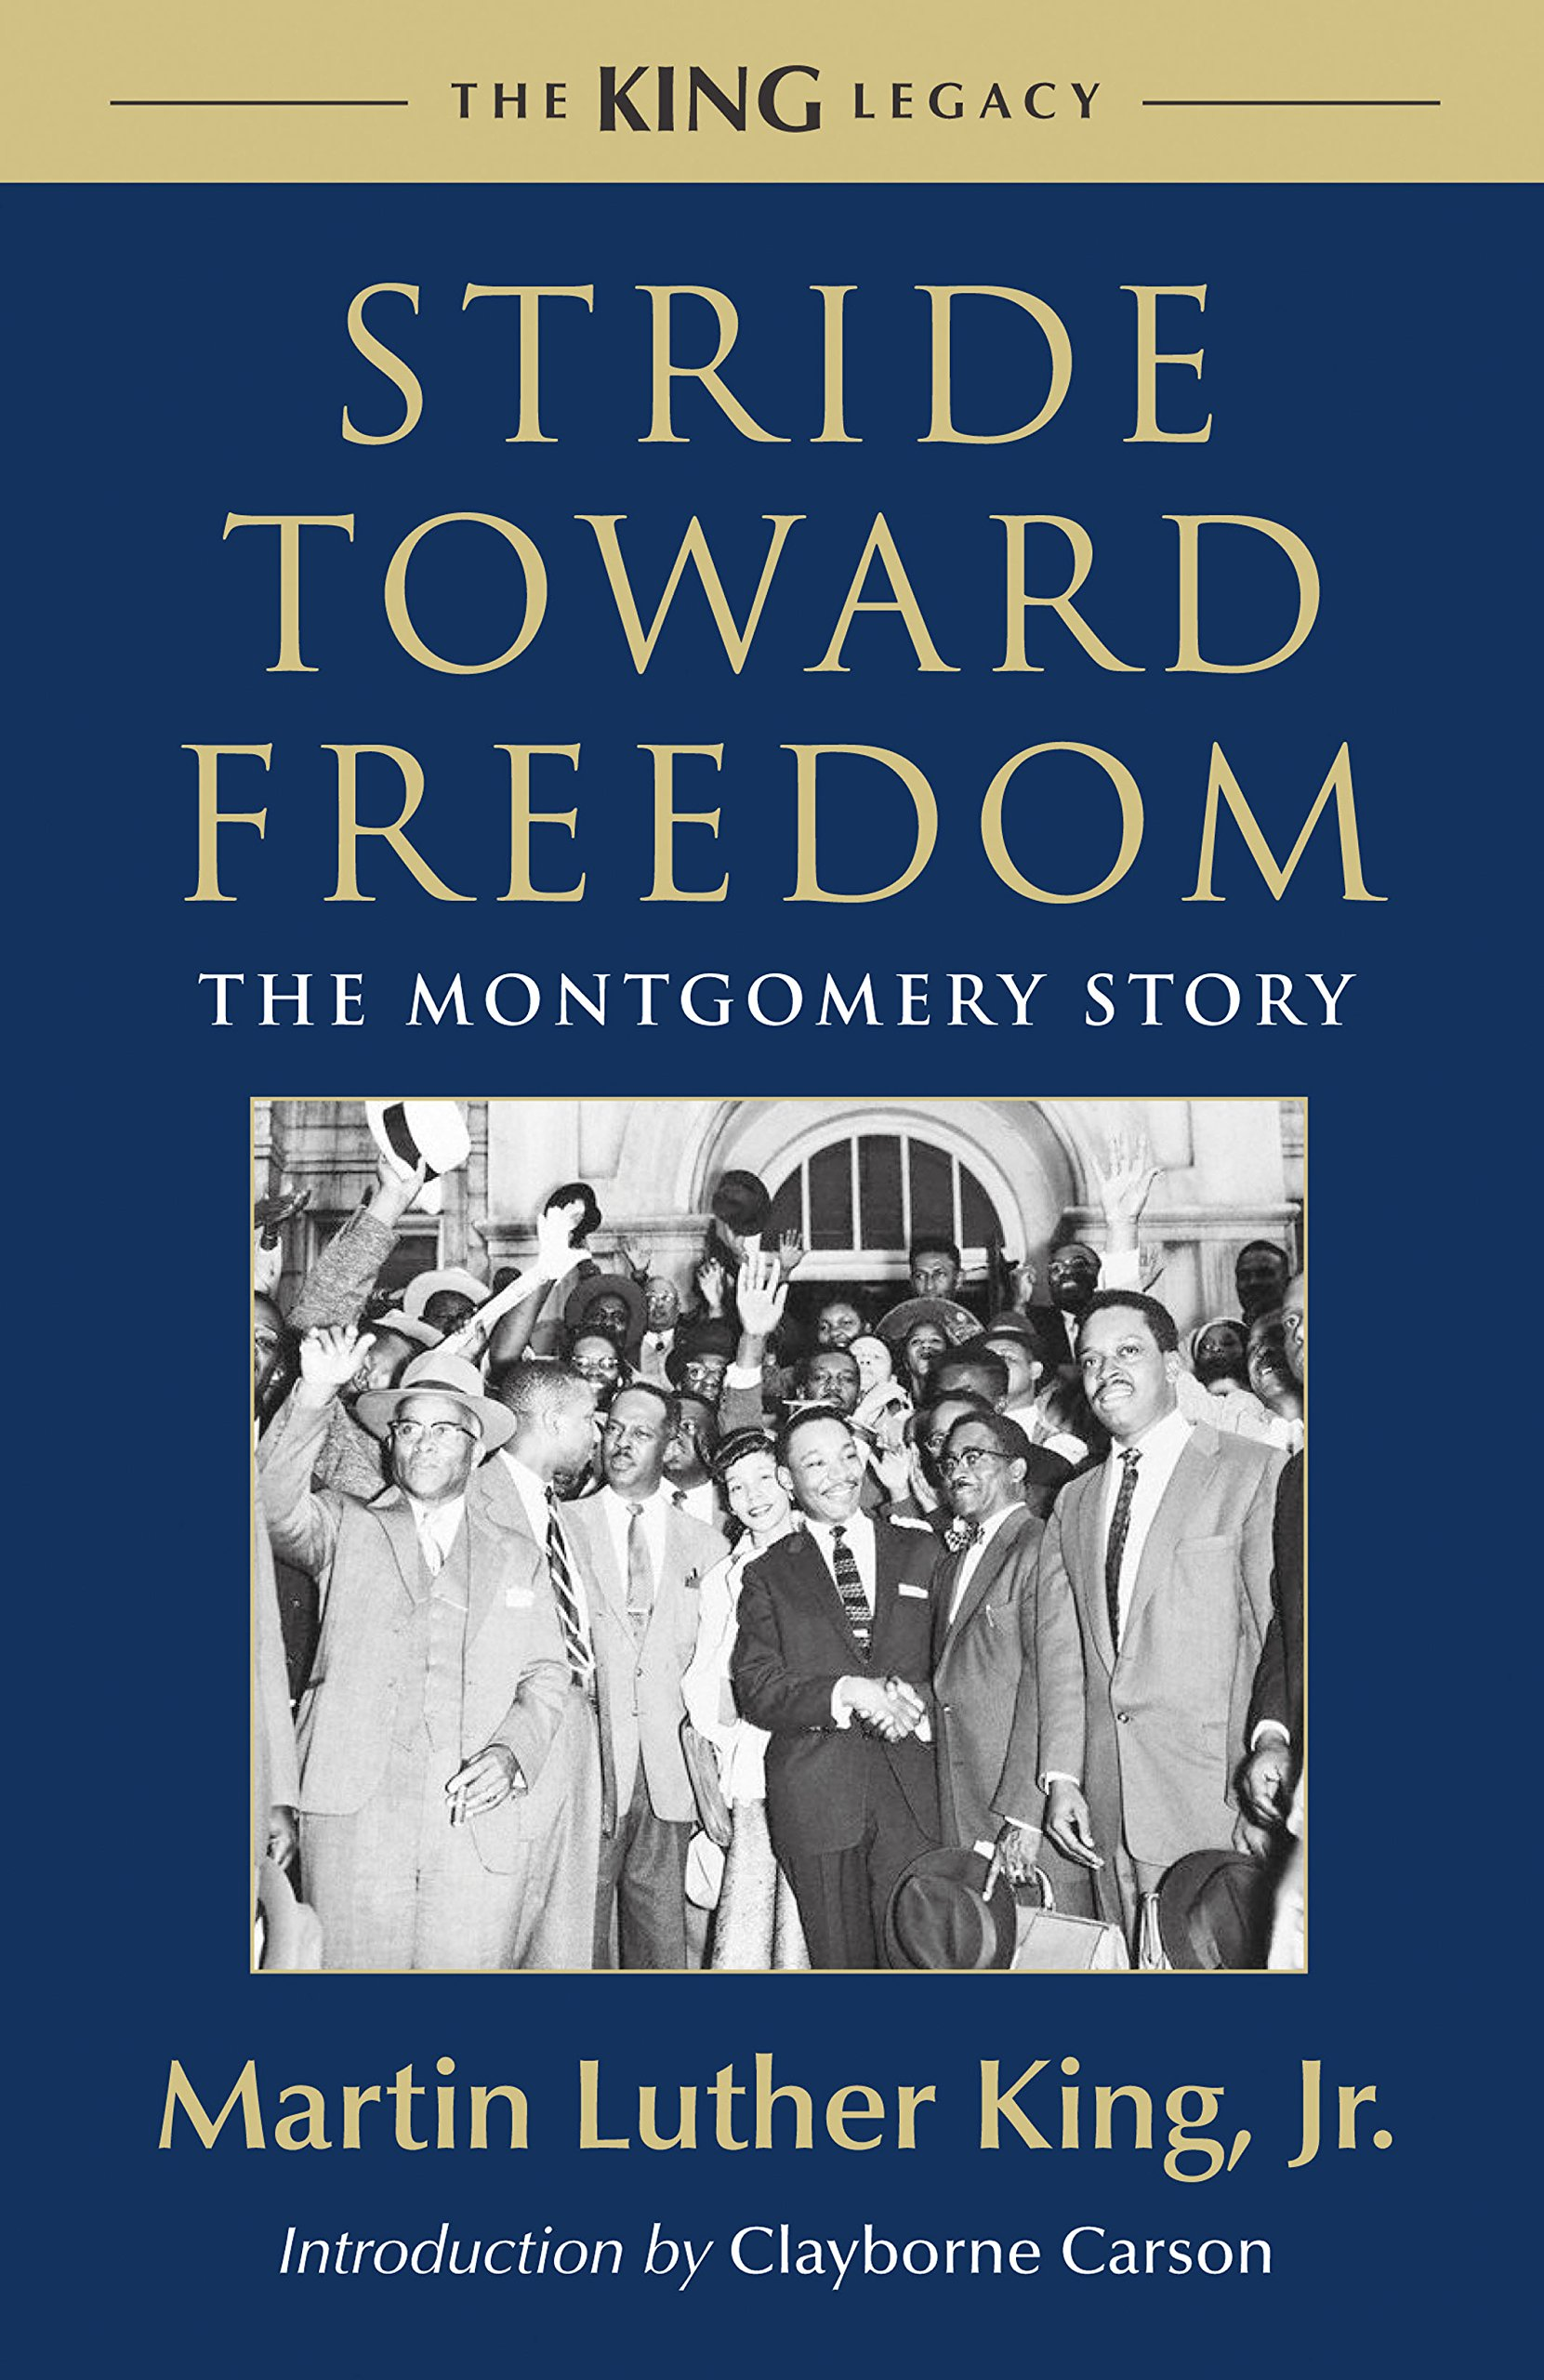 Stride toward freedom the montgomery story king legacy martin stride toward freedom the montgomery story king legacy martin luther king clayborne carson 9780807000694 amazon books fandeluxe Images